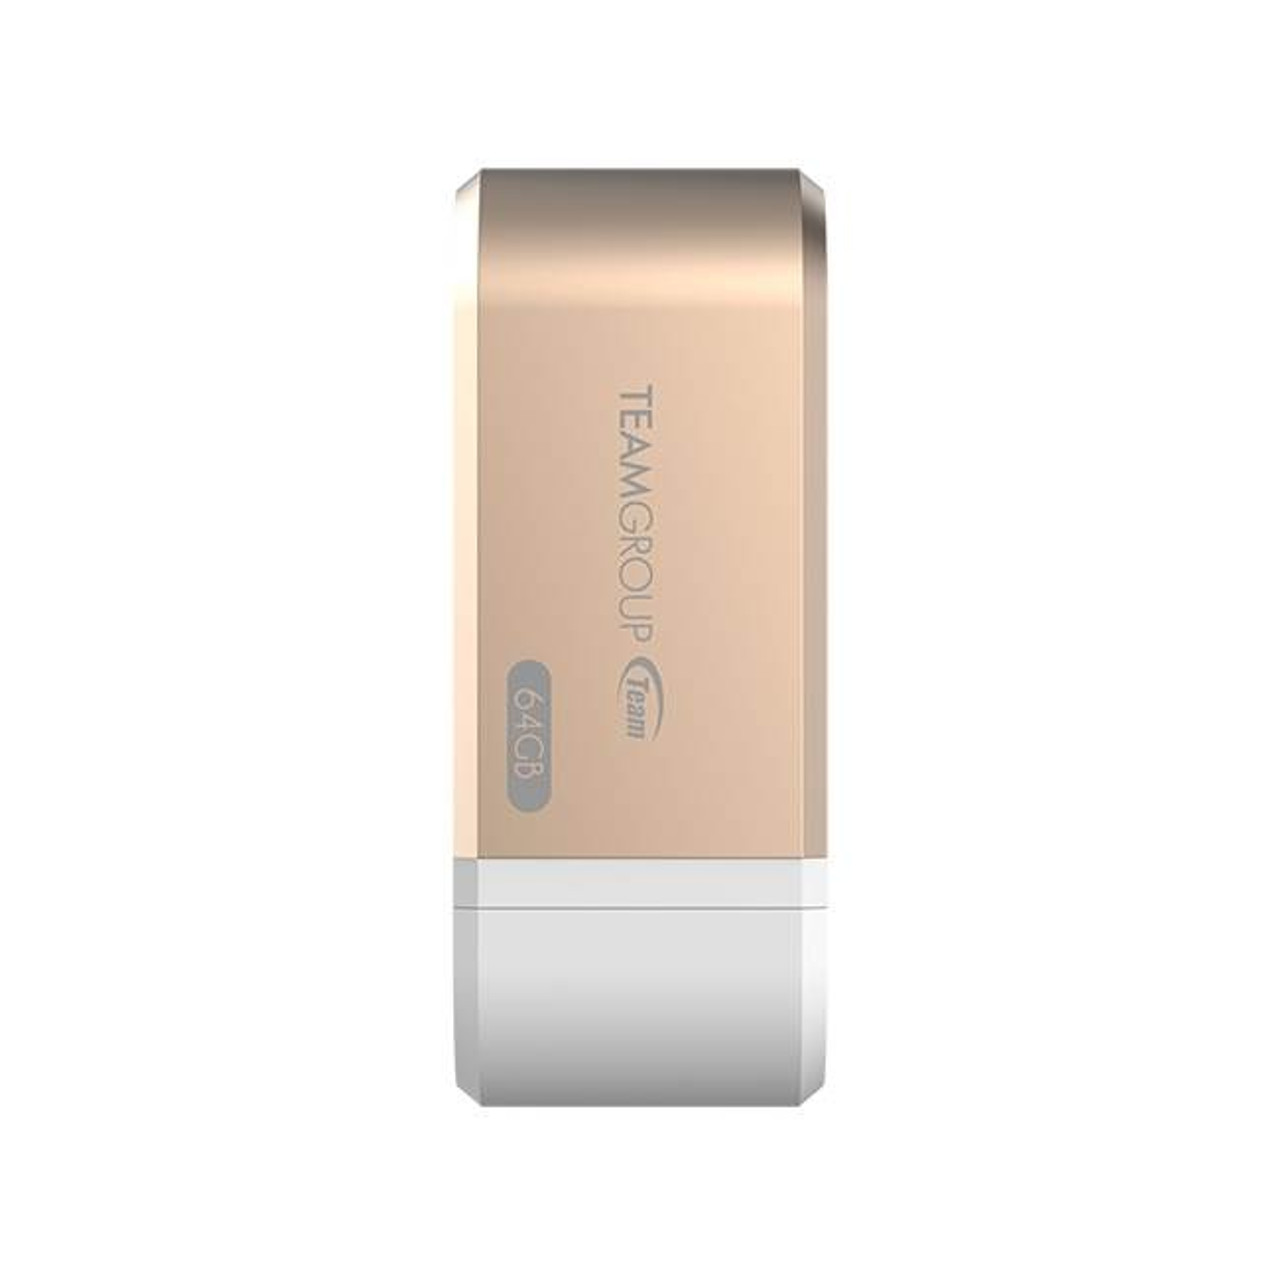 Image for Team MoStash WG02 iOS 64GB Flash Drive Apple Expansion OTG - Gold - TWG02CGD01 CX Computer Superstore